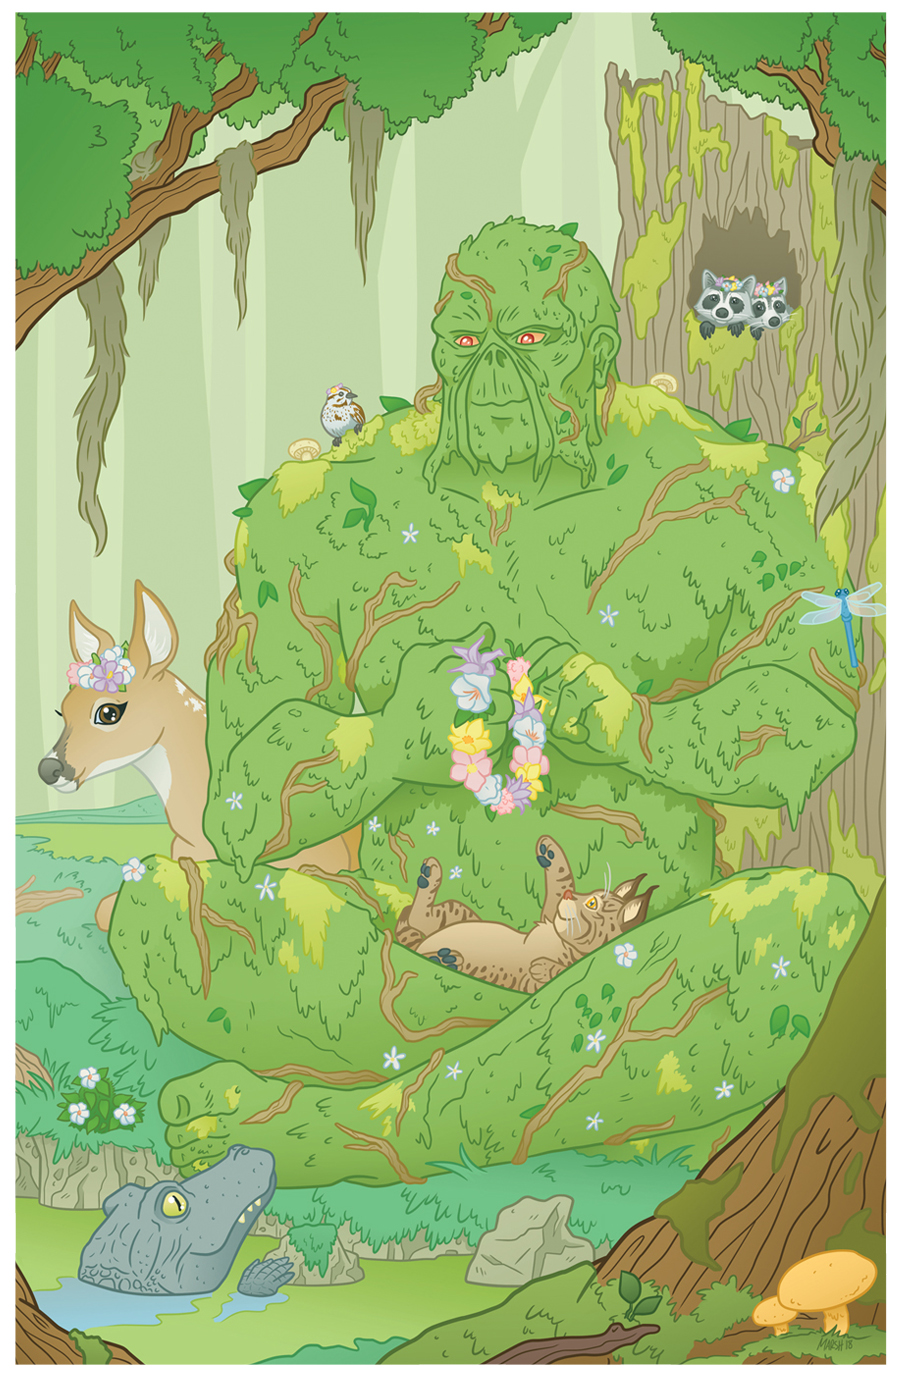 Swamp Thing hanging out with all his pals!